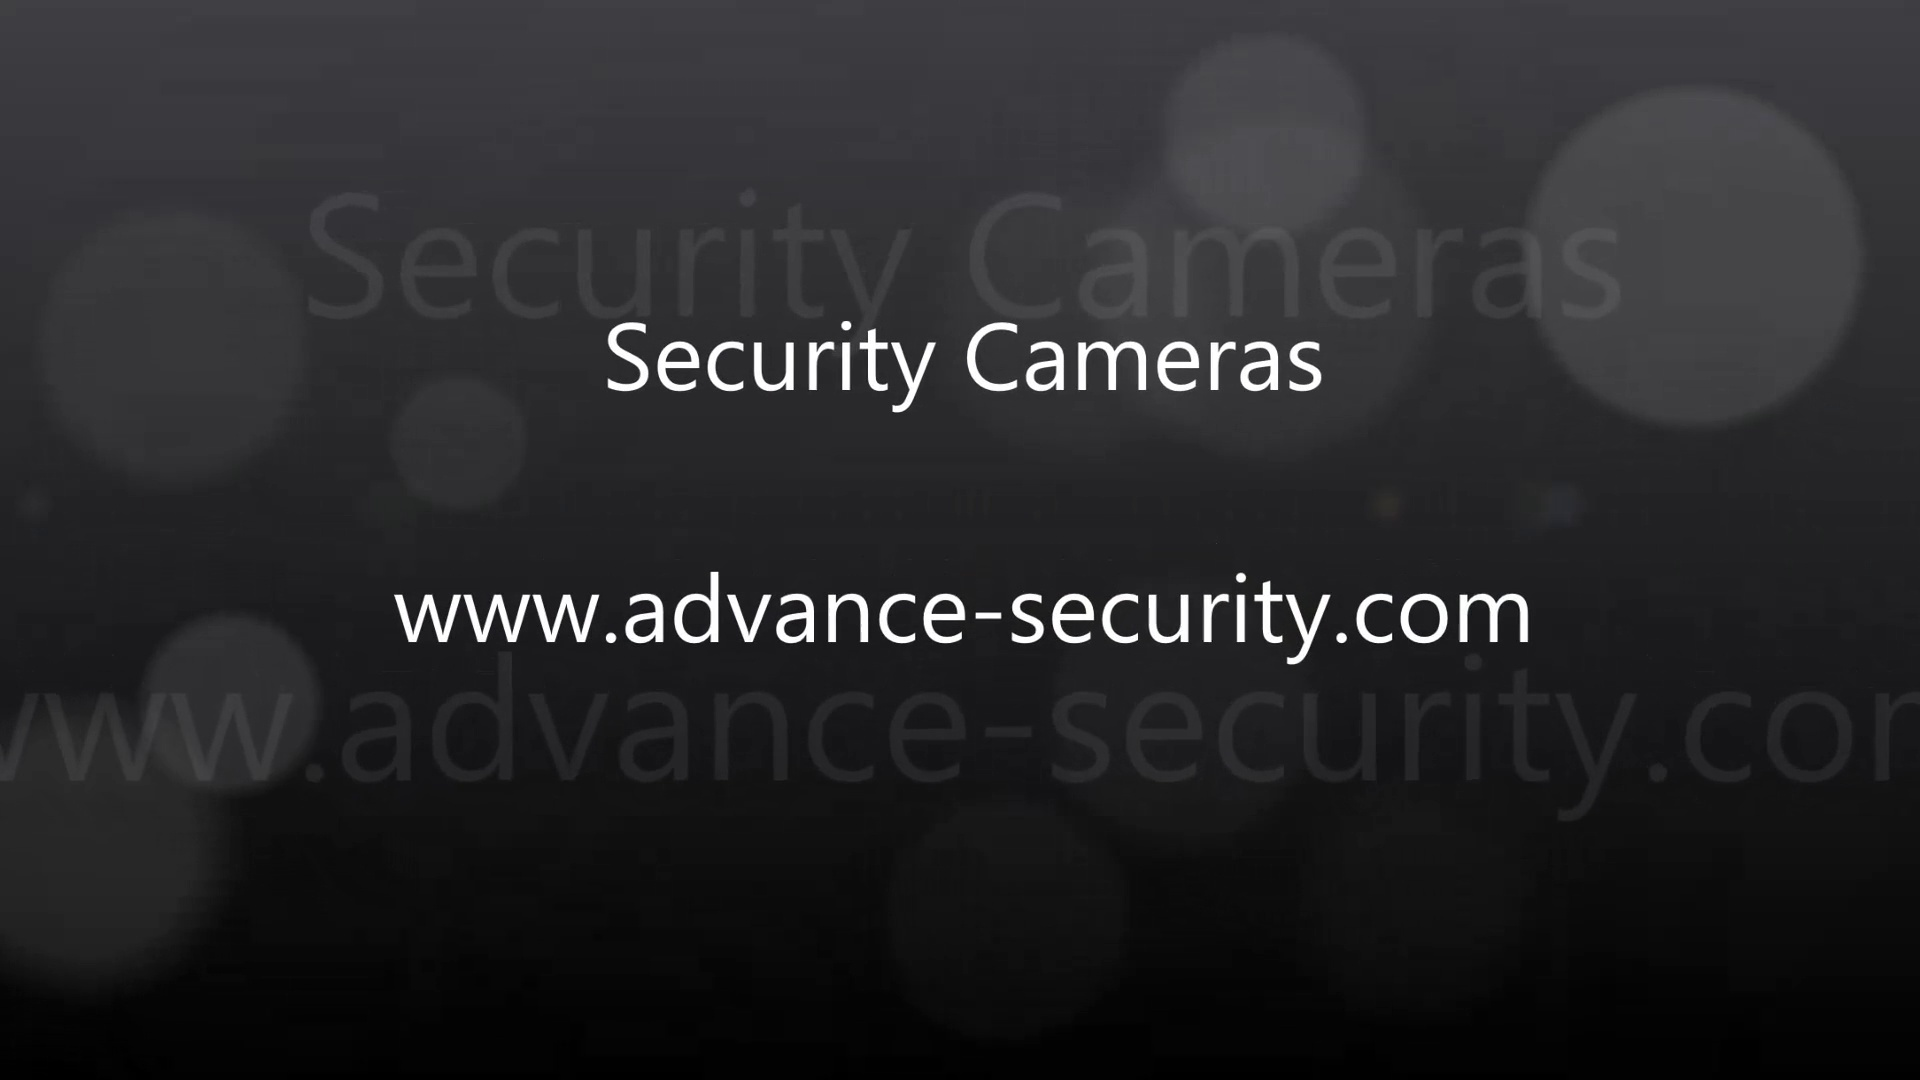 Security Cameras at Advance Security